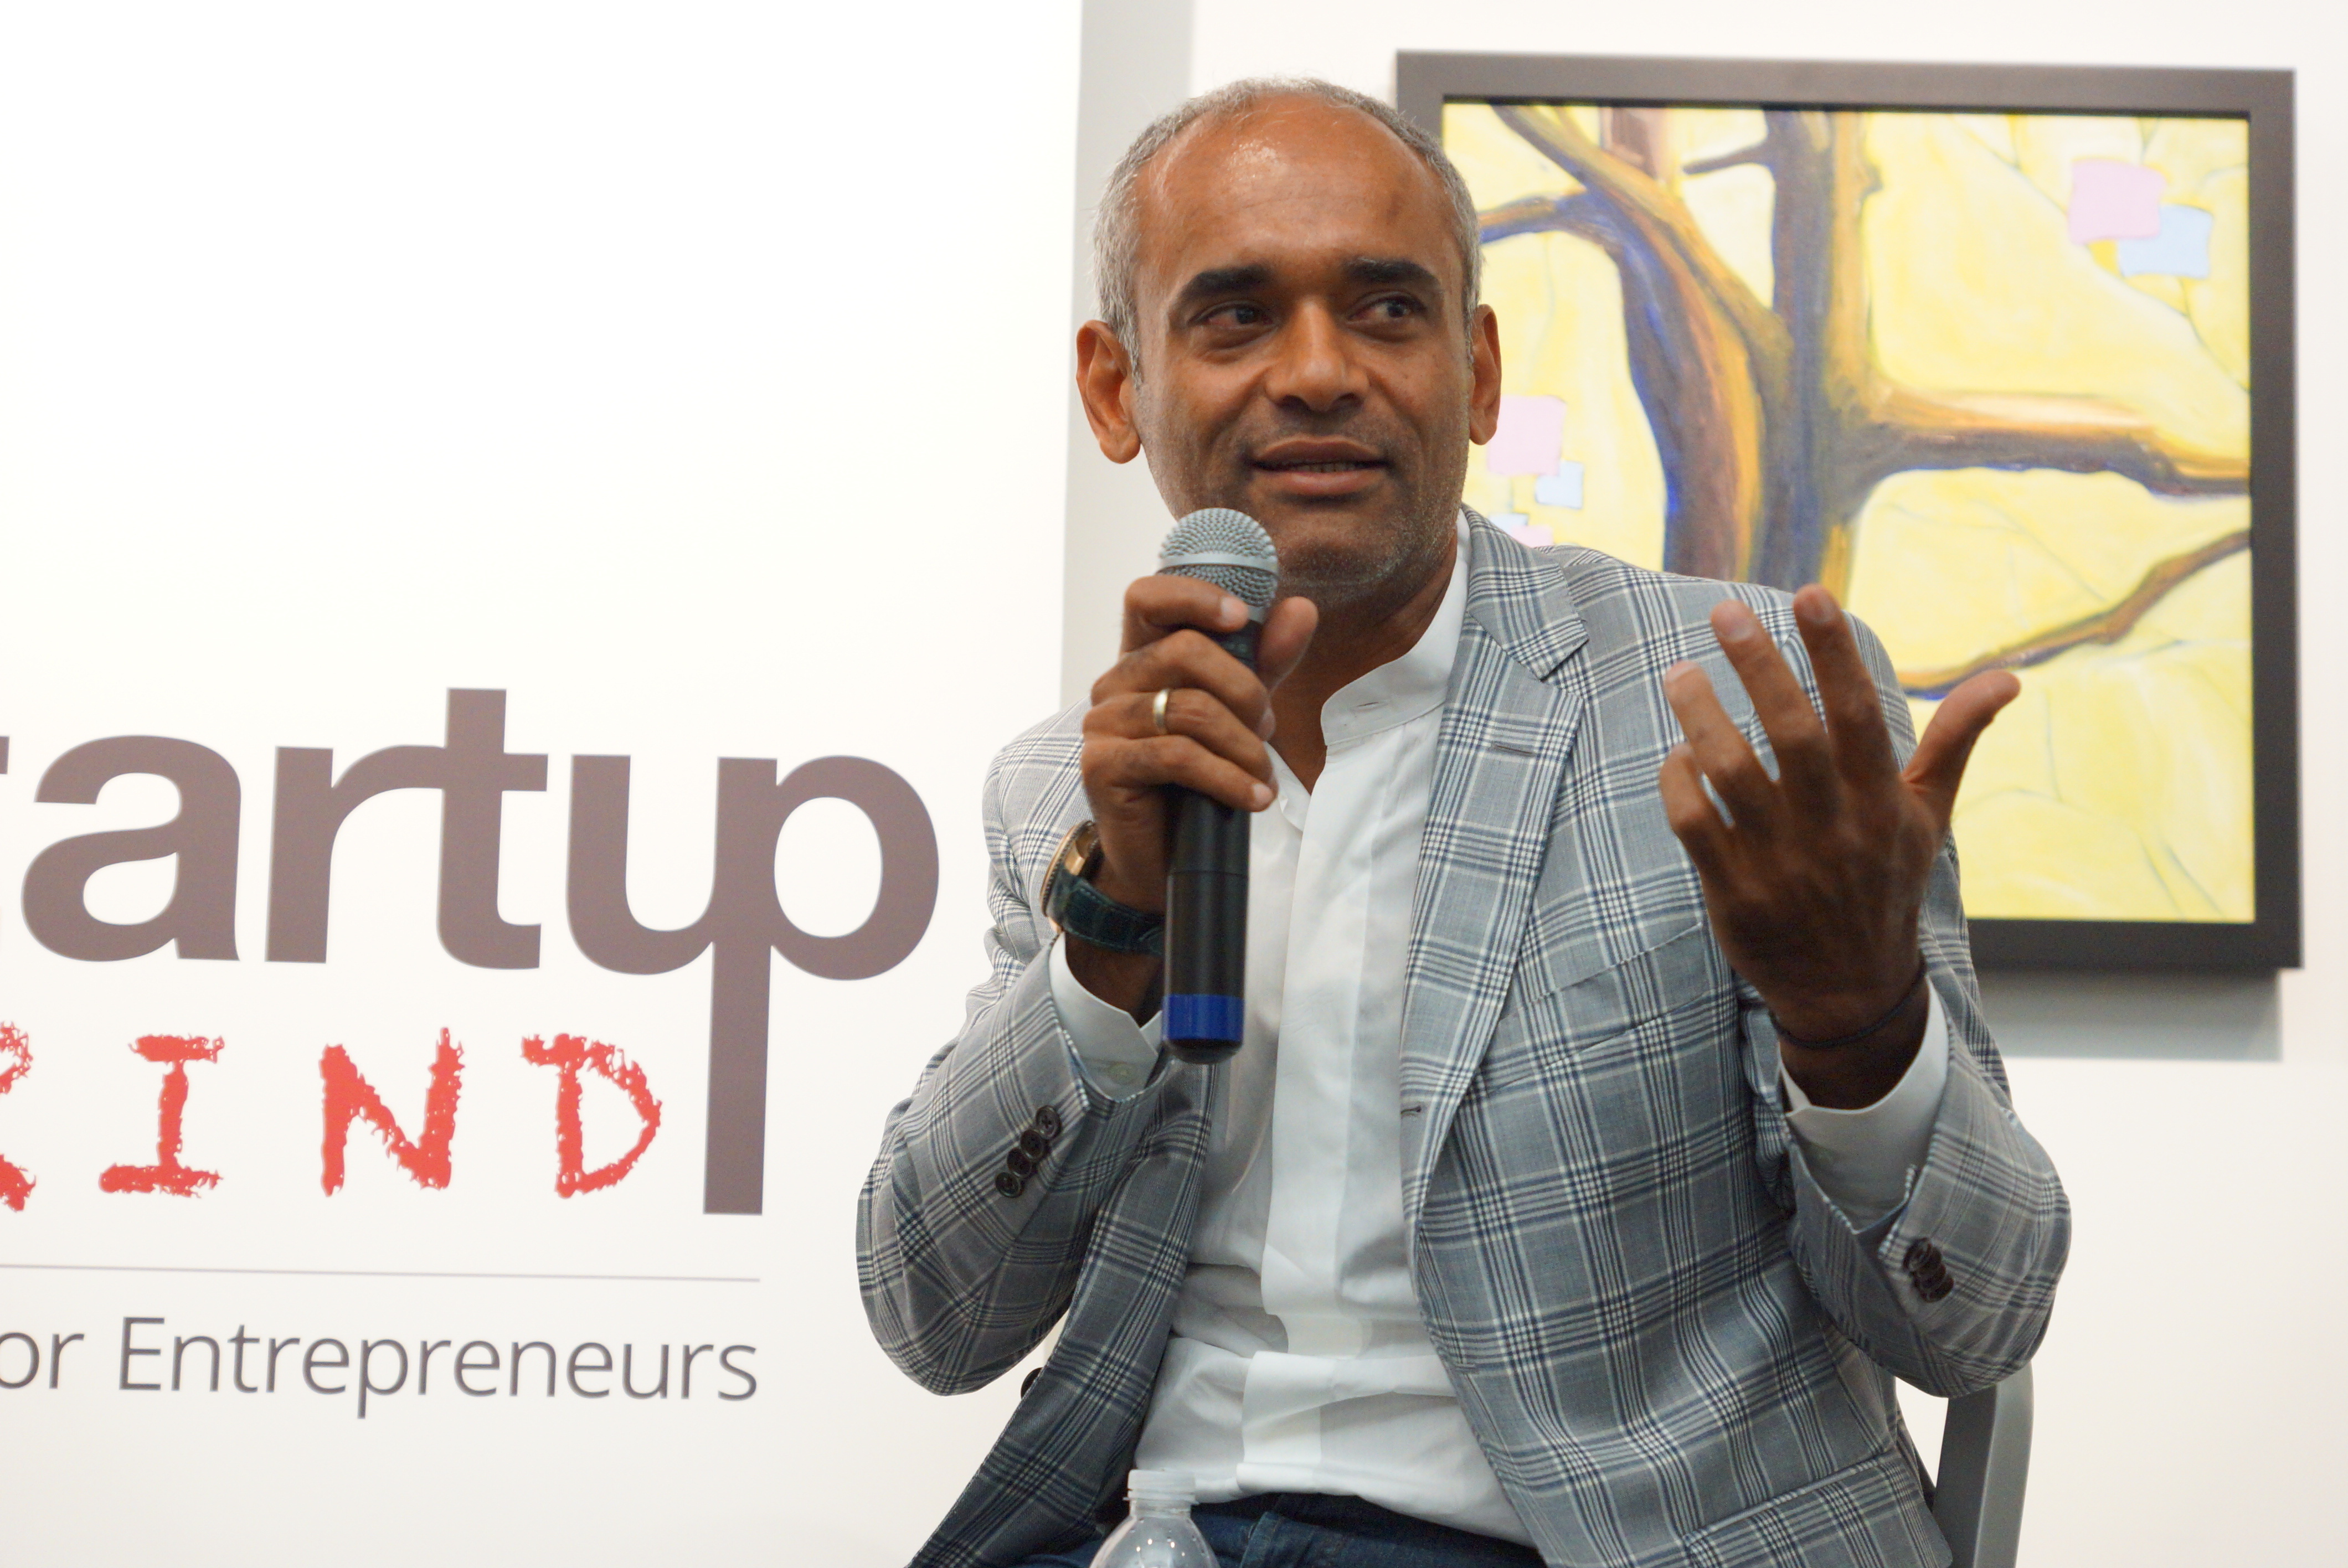 Aereo's CEO Chet Kanojia talking to a group of start-ups in New York